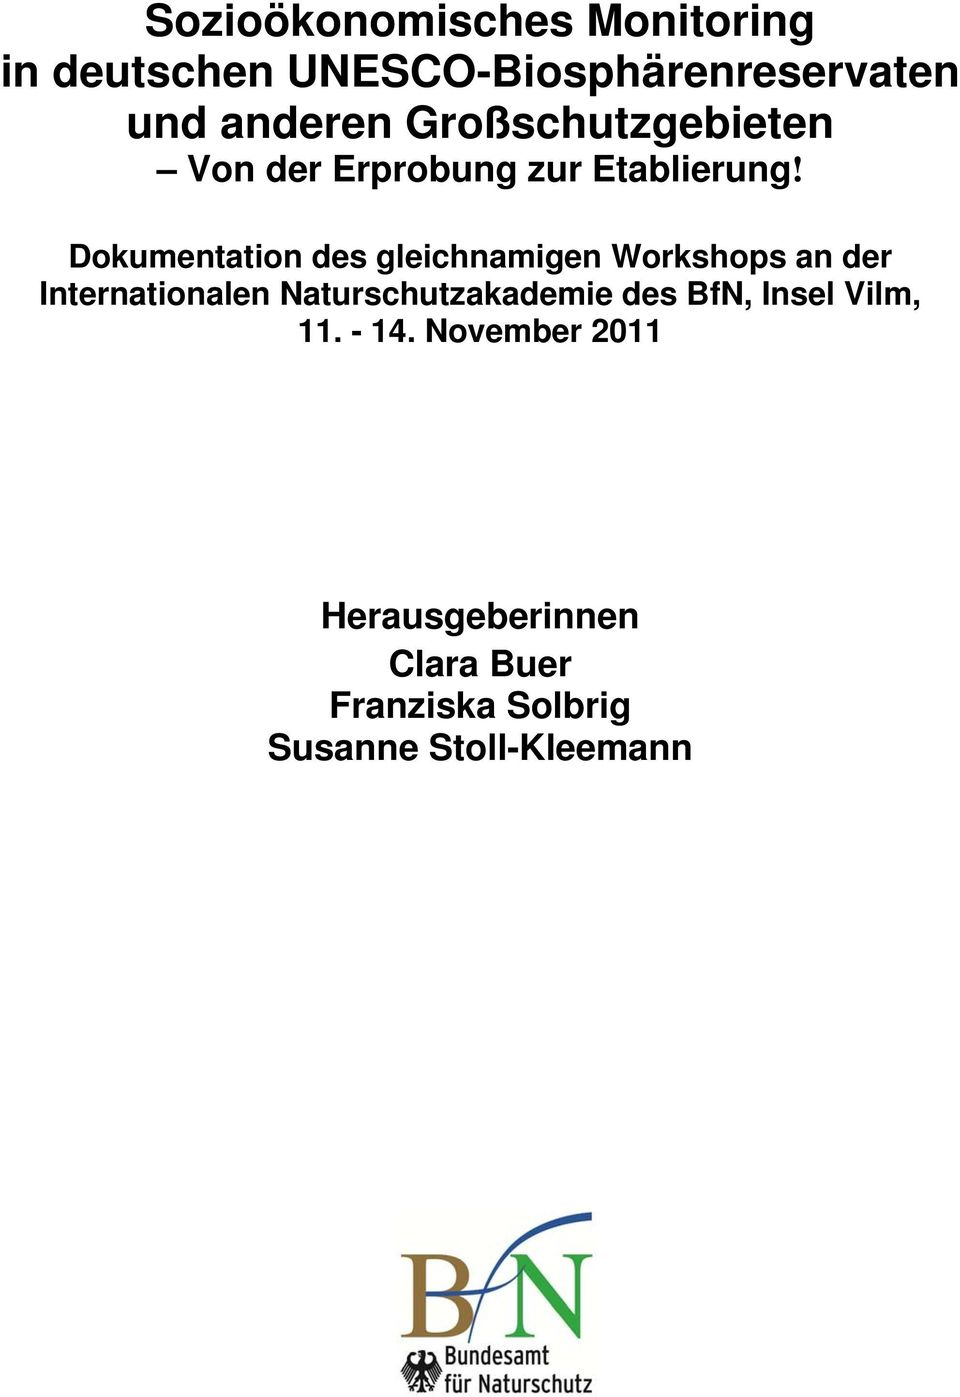 Dokumentation des gleichnamigen Workshops an der Internationalen